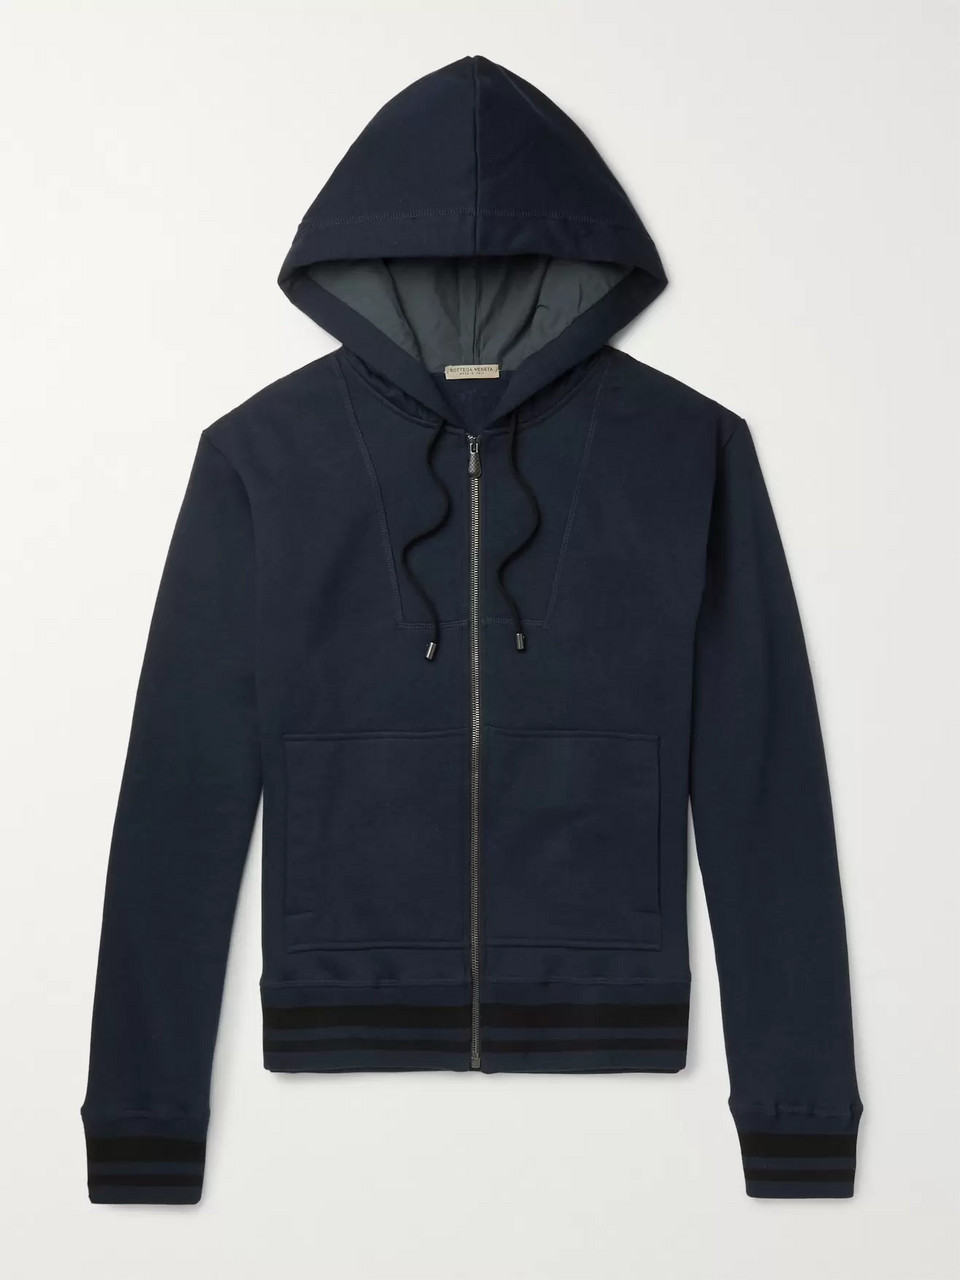 Bottega Veneta Fleece-Back Cotton-Blend Jersey Zip-Up Hoodie